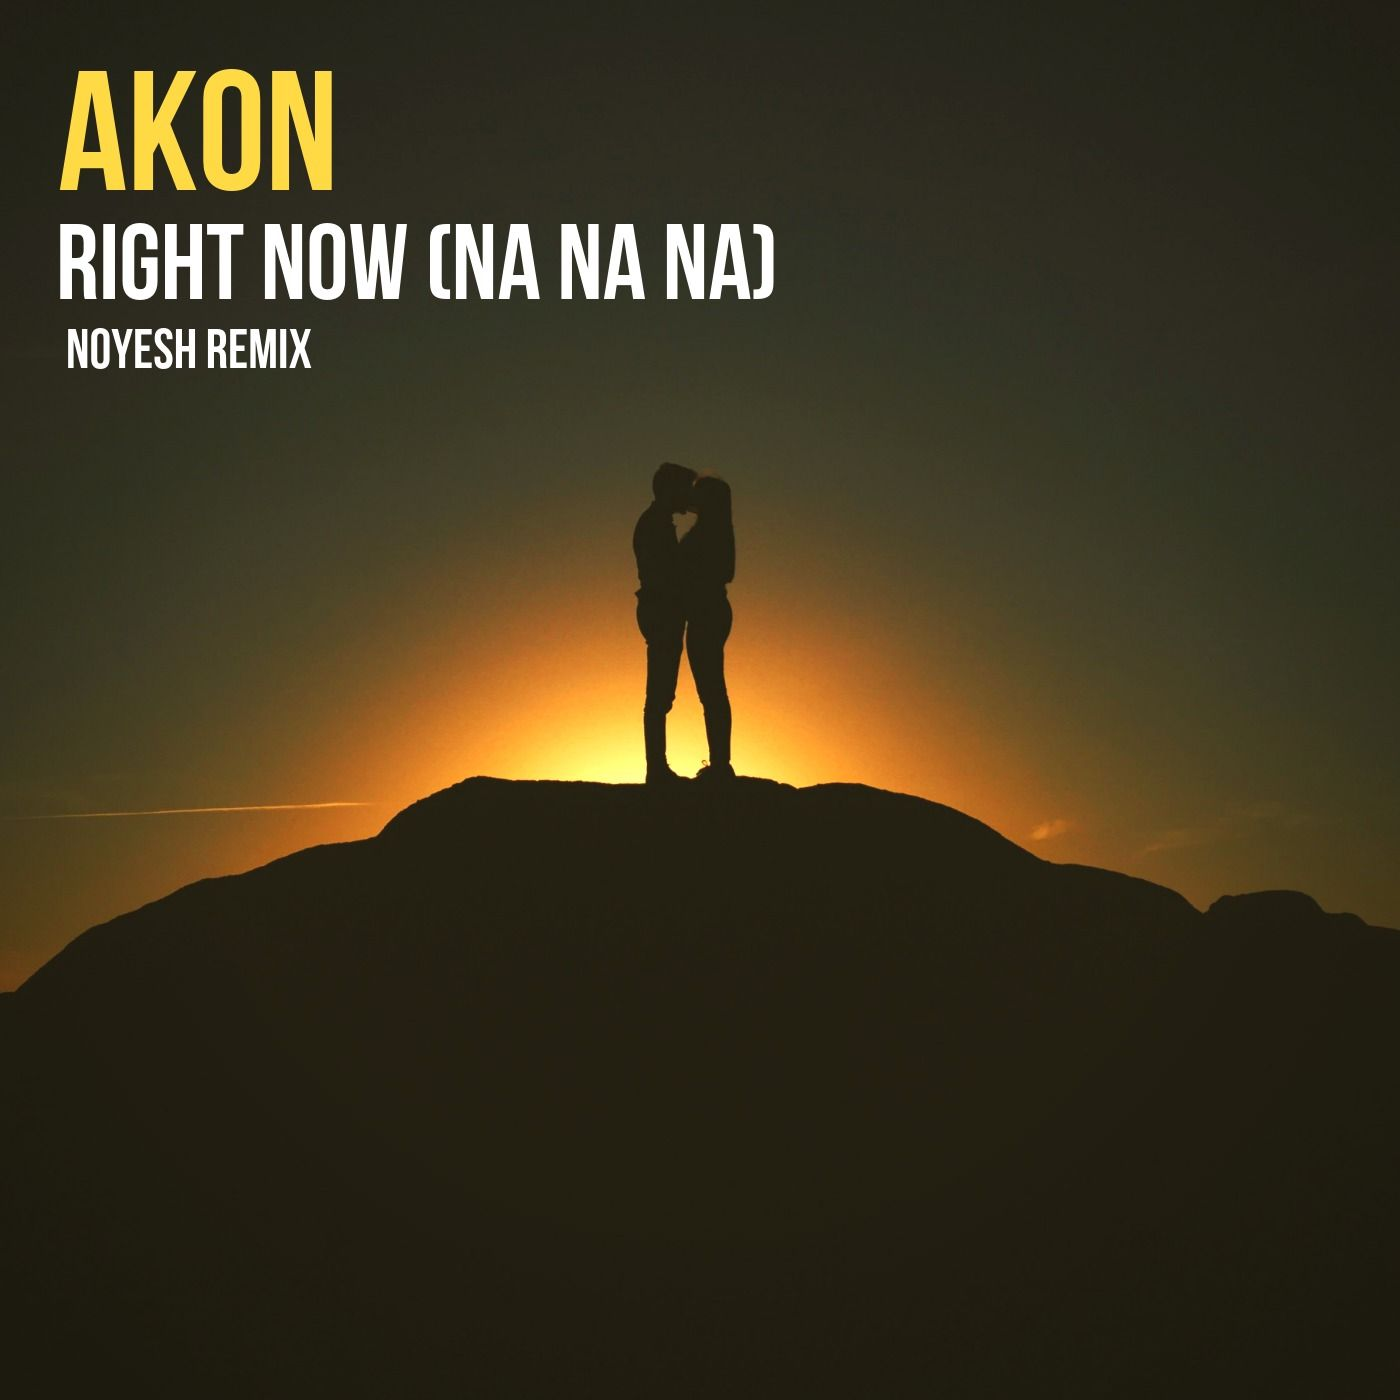 Akon - Right Now (Na Na Na) (Noyesh Remix) by Noyesh from Noyesh